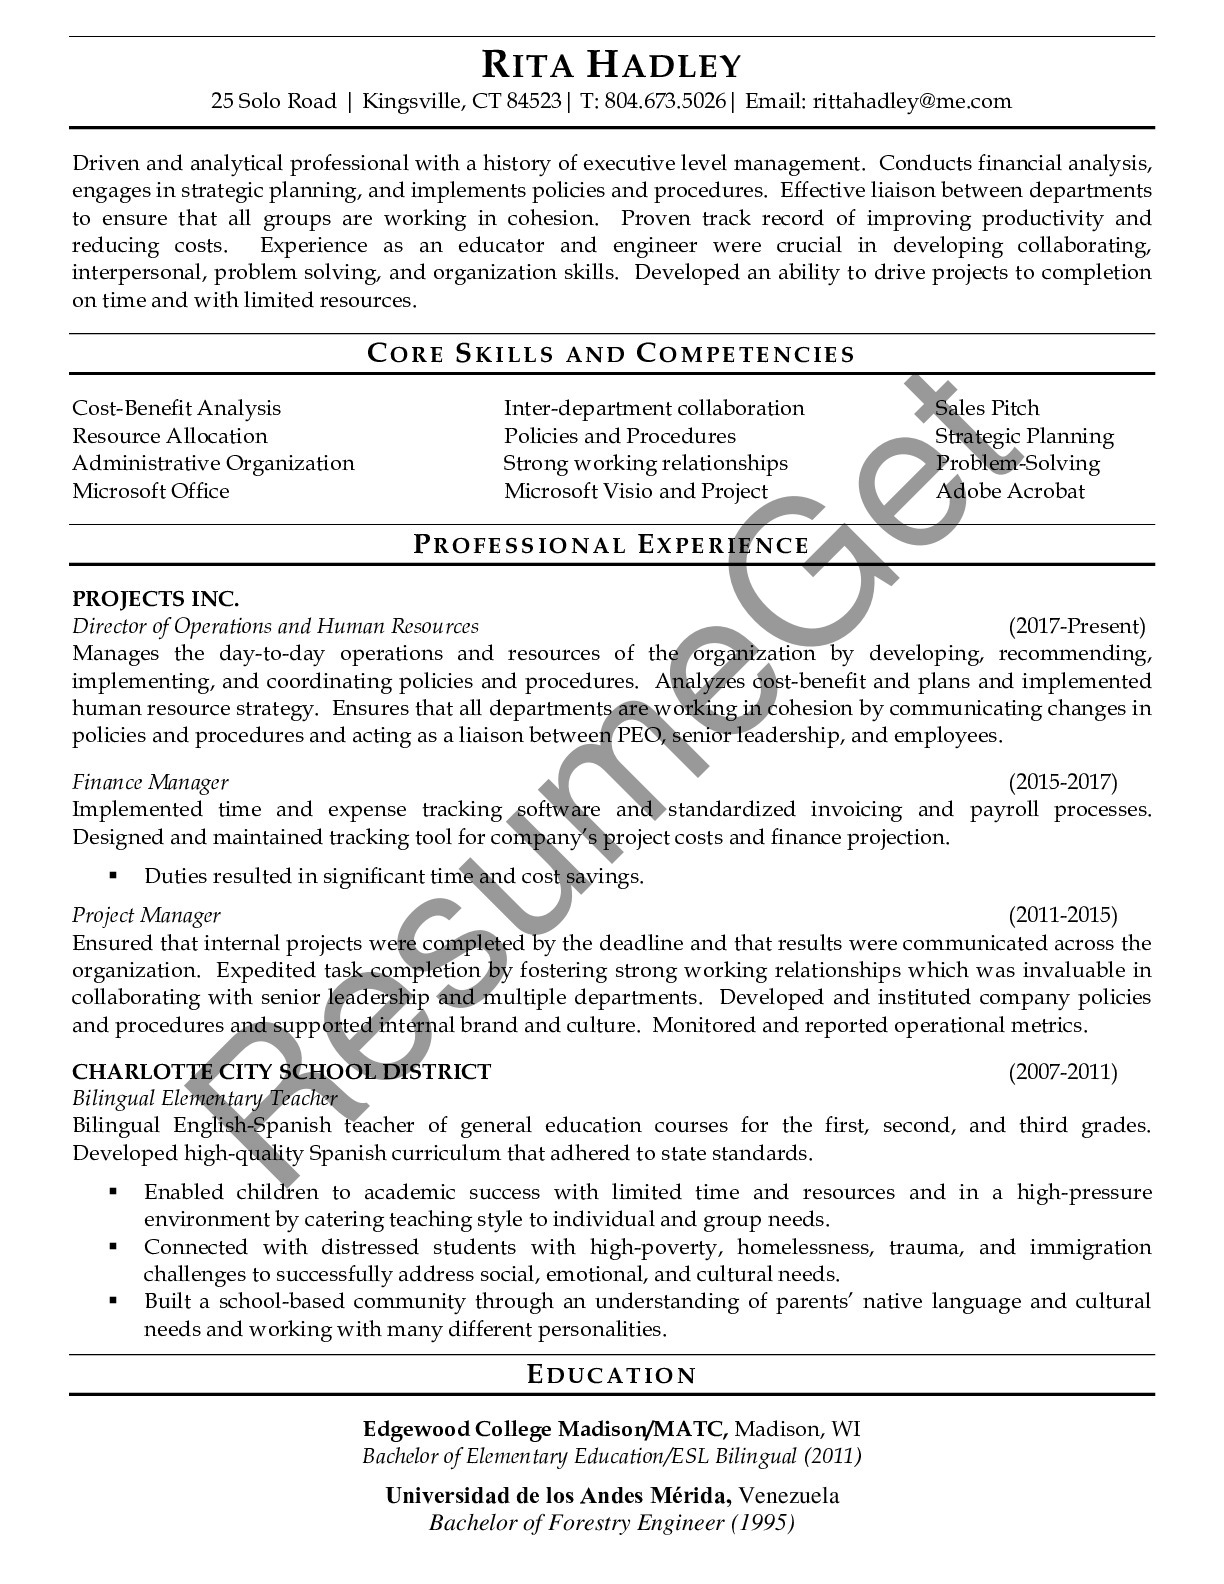 Resume Example for Manager